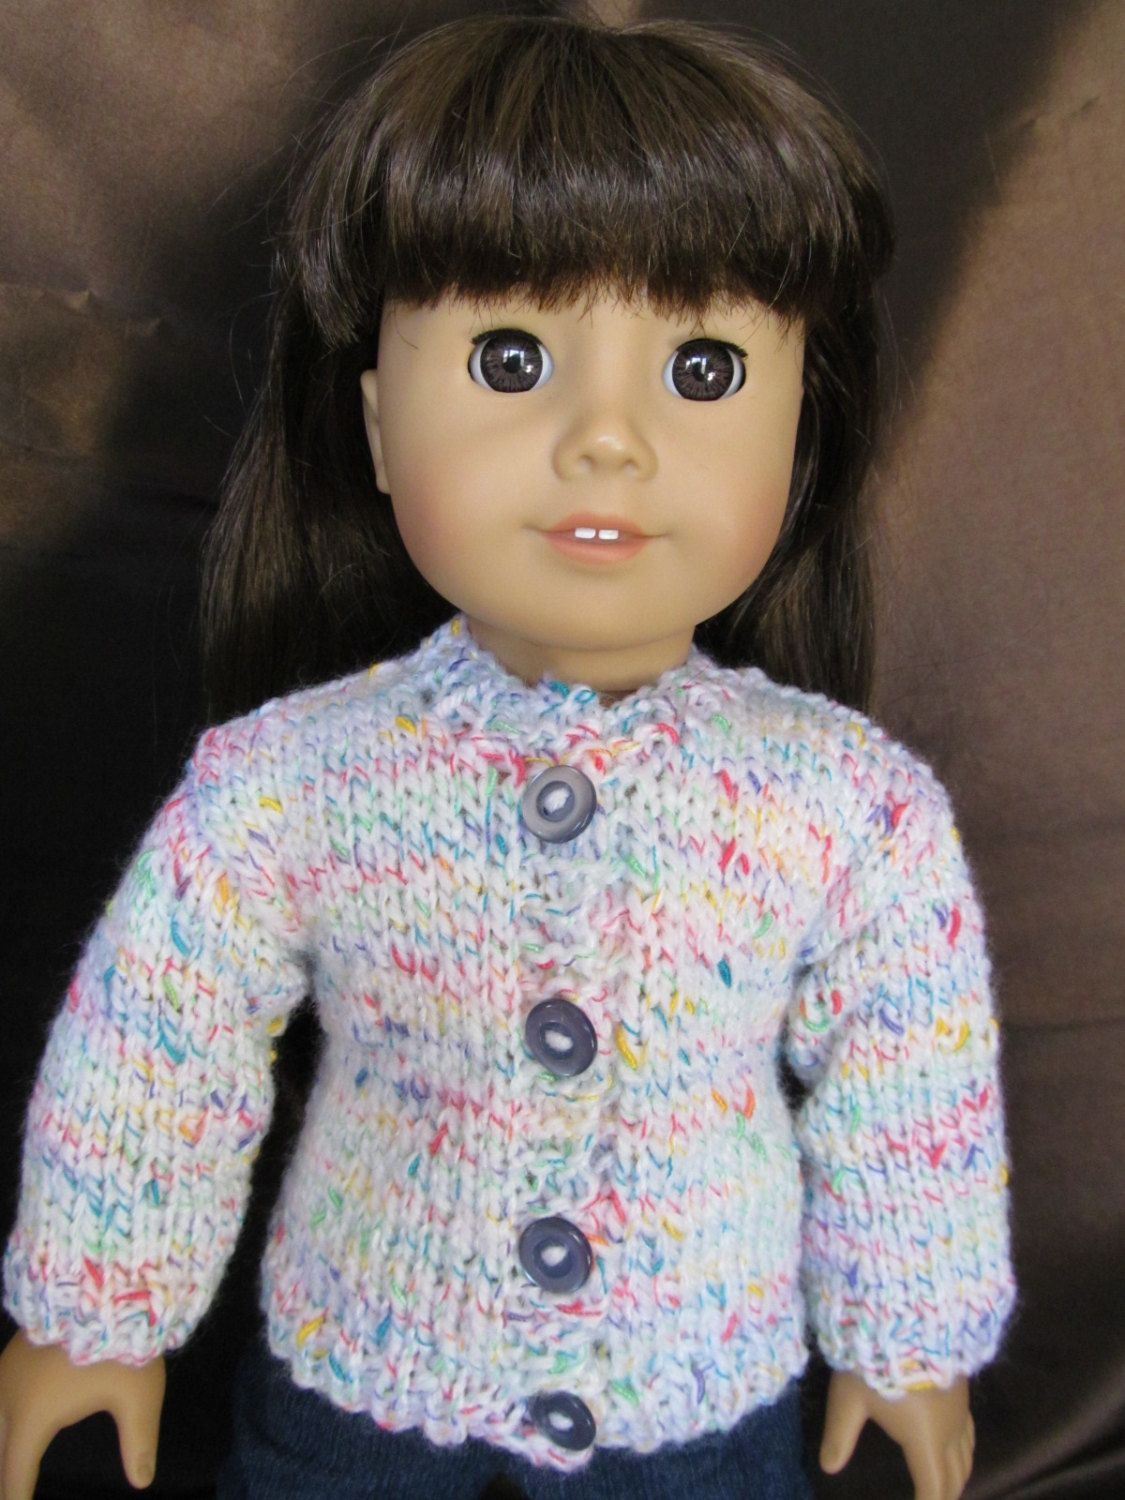 18''Doll Hand Knit Sweater, as seen on American Girl, Casual Wear, Everyday Wear, Fun Colorful Sweater, Multi Colored Sweater, Outer Wear by SewManyThingsbyNancy on Etsy